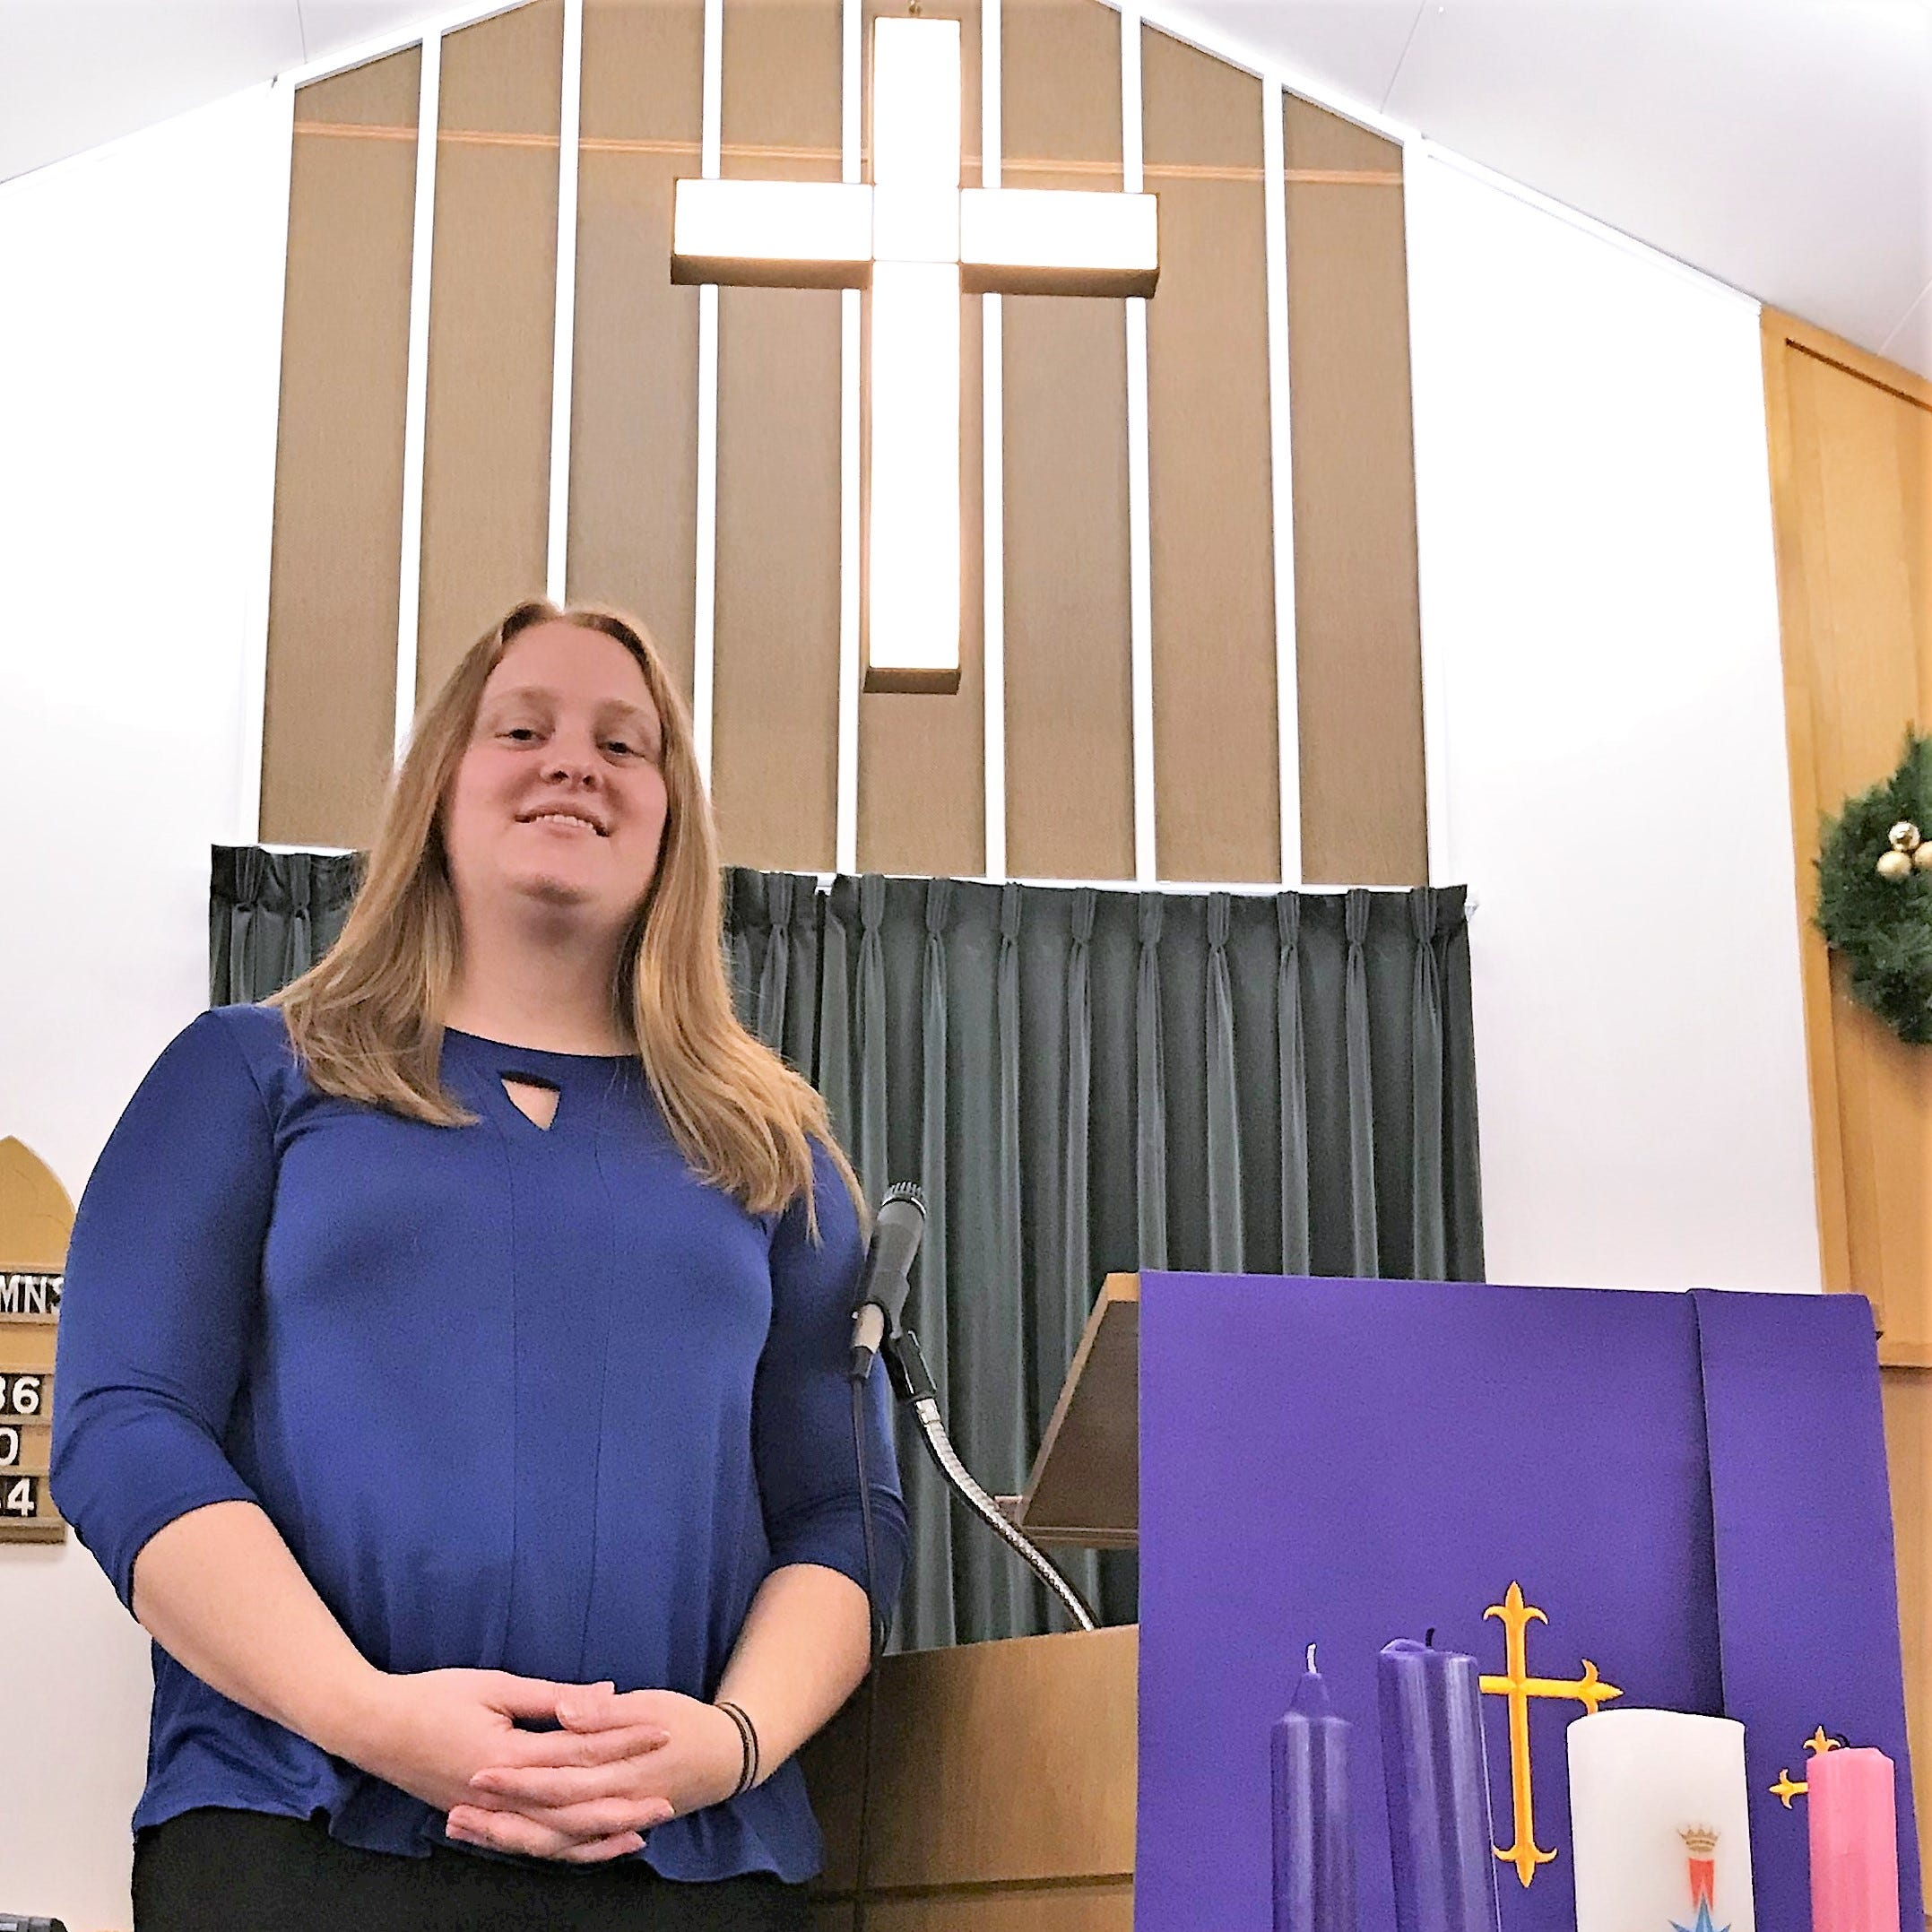 New pastor brings Southern charm, fresh outlook to Pine City church